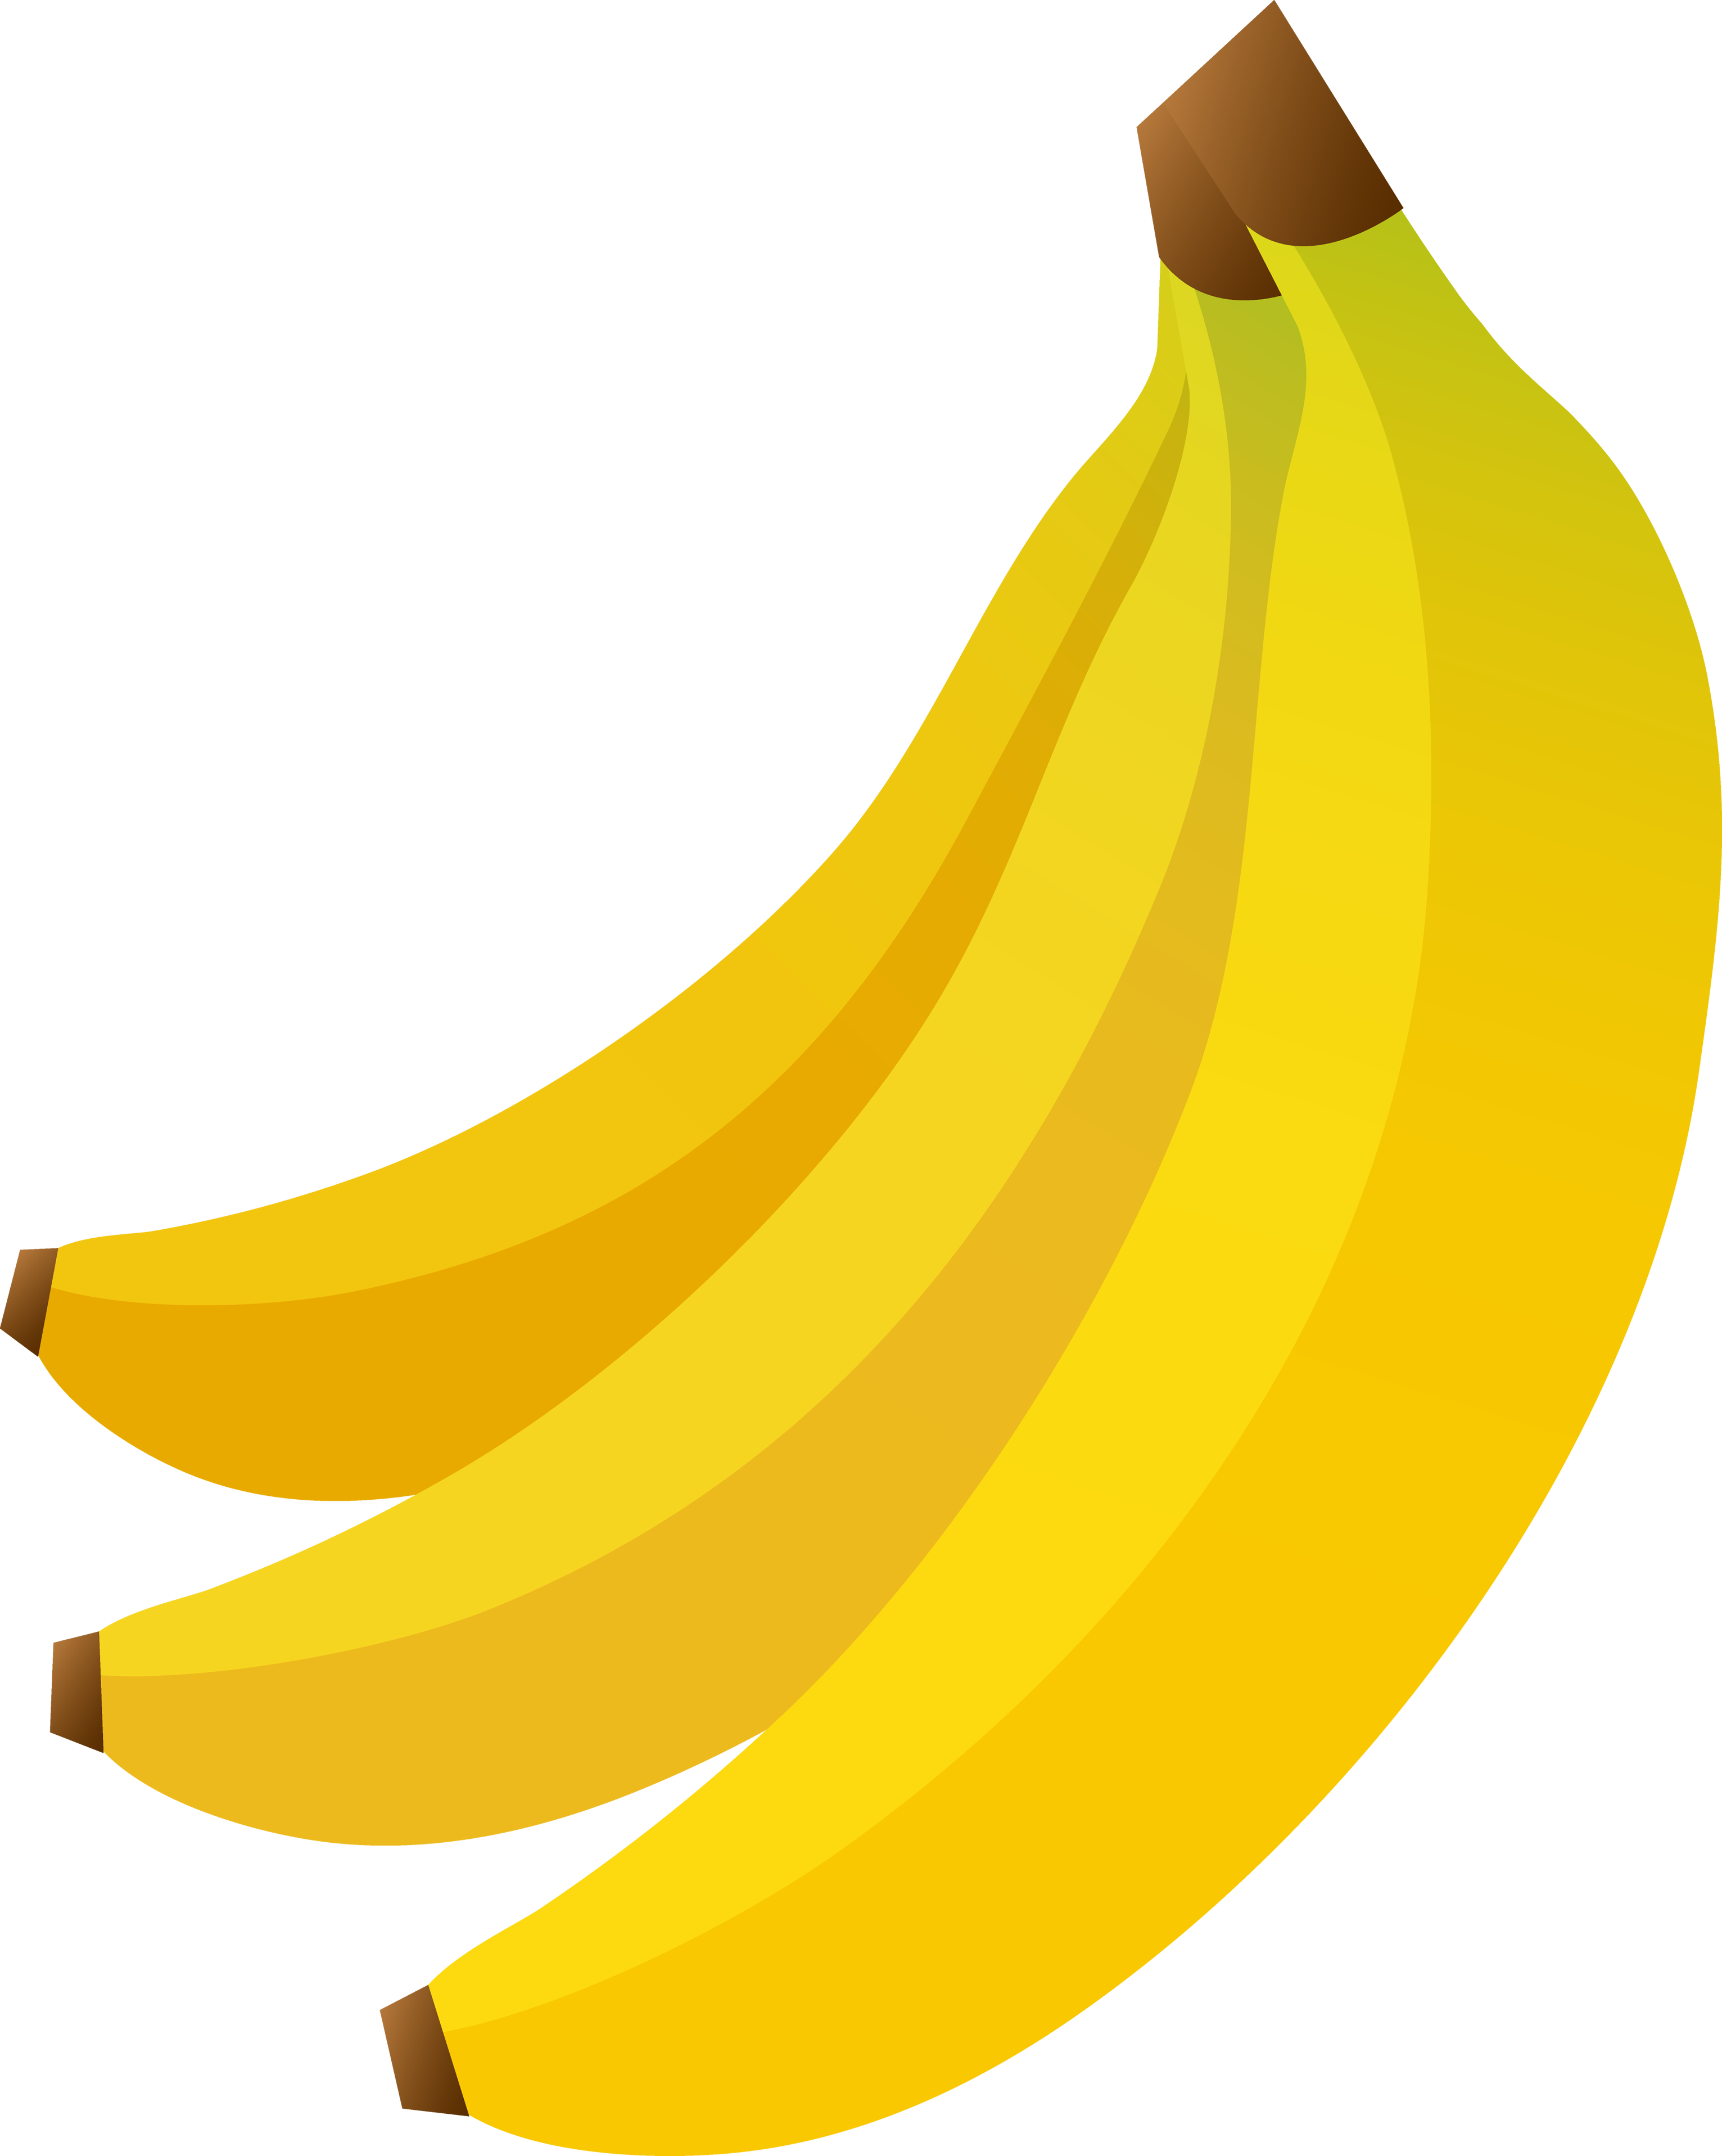 banana tree drawing png - photo #11